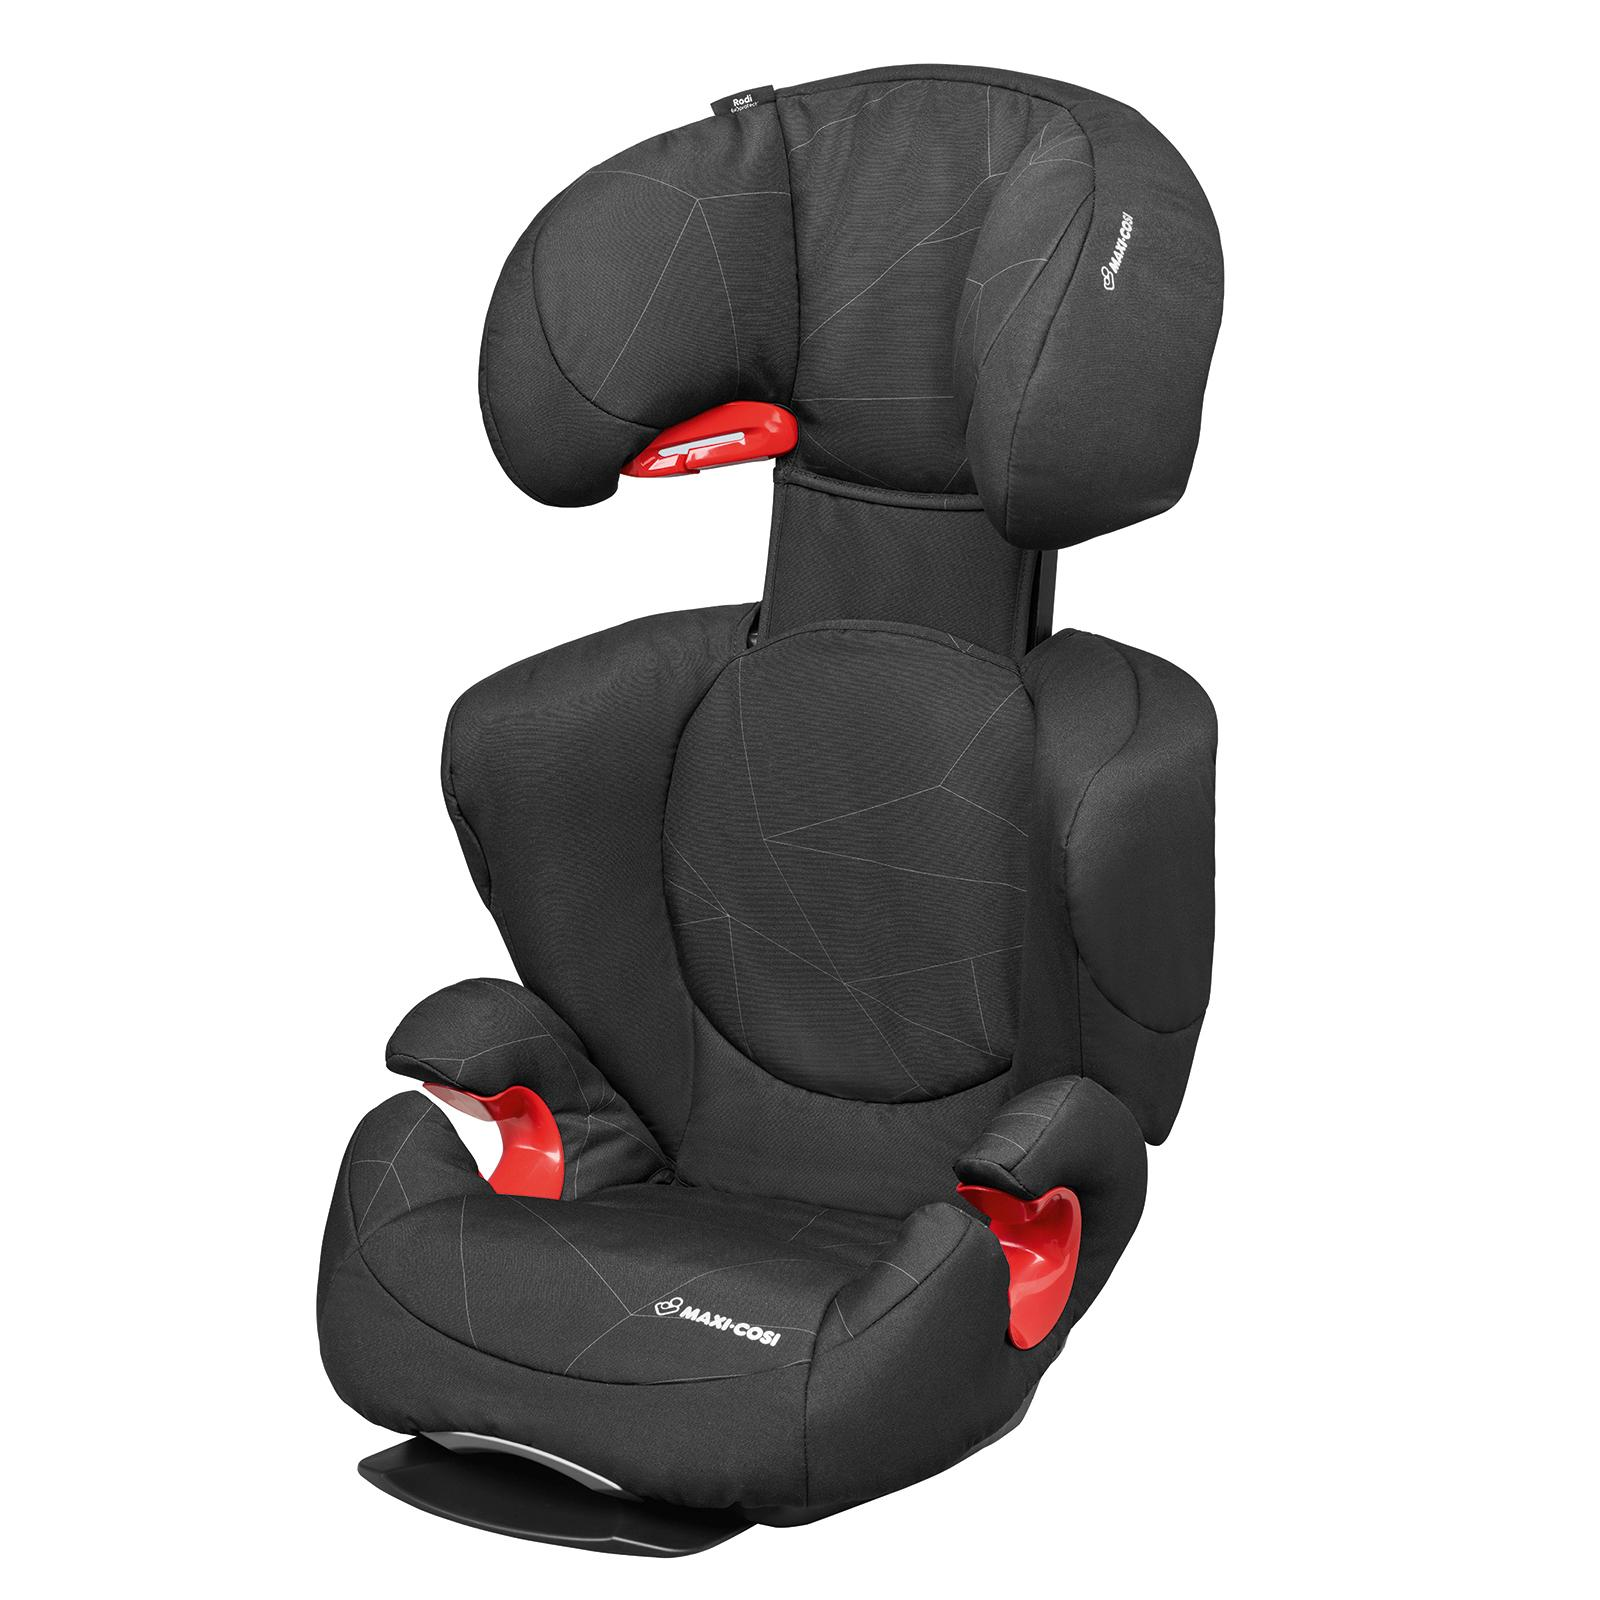 Автокресло Maxi-Cosi Rodi AirProtect Black Diamond